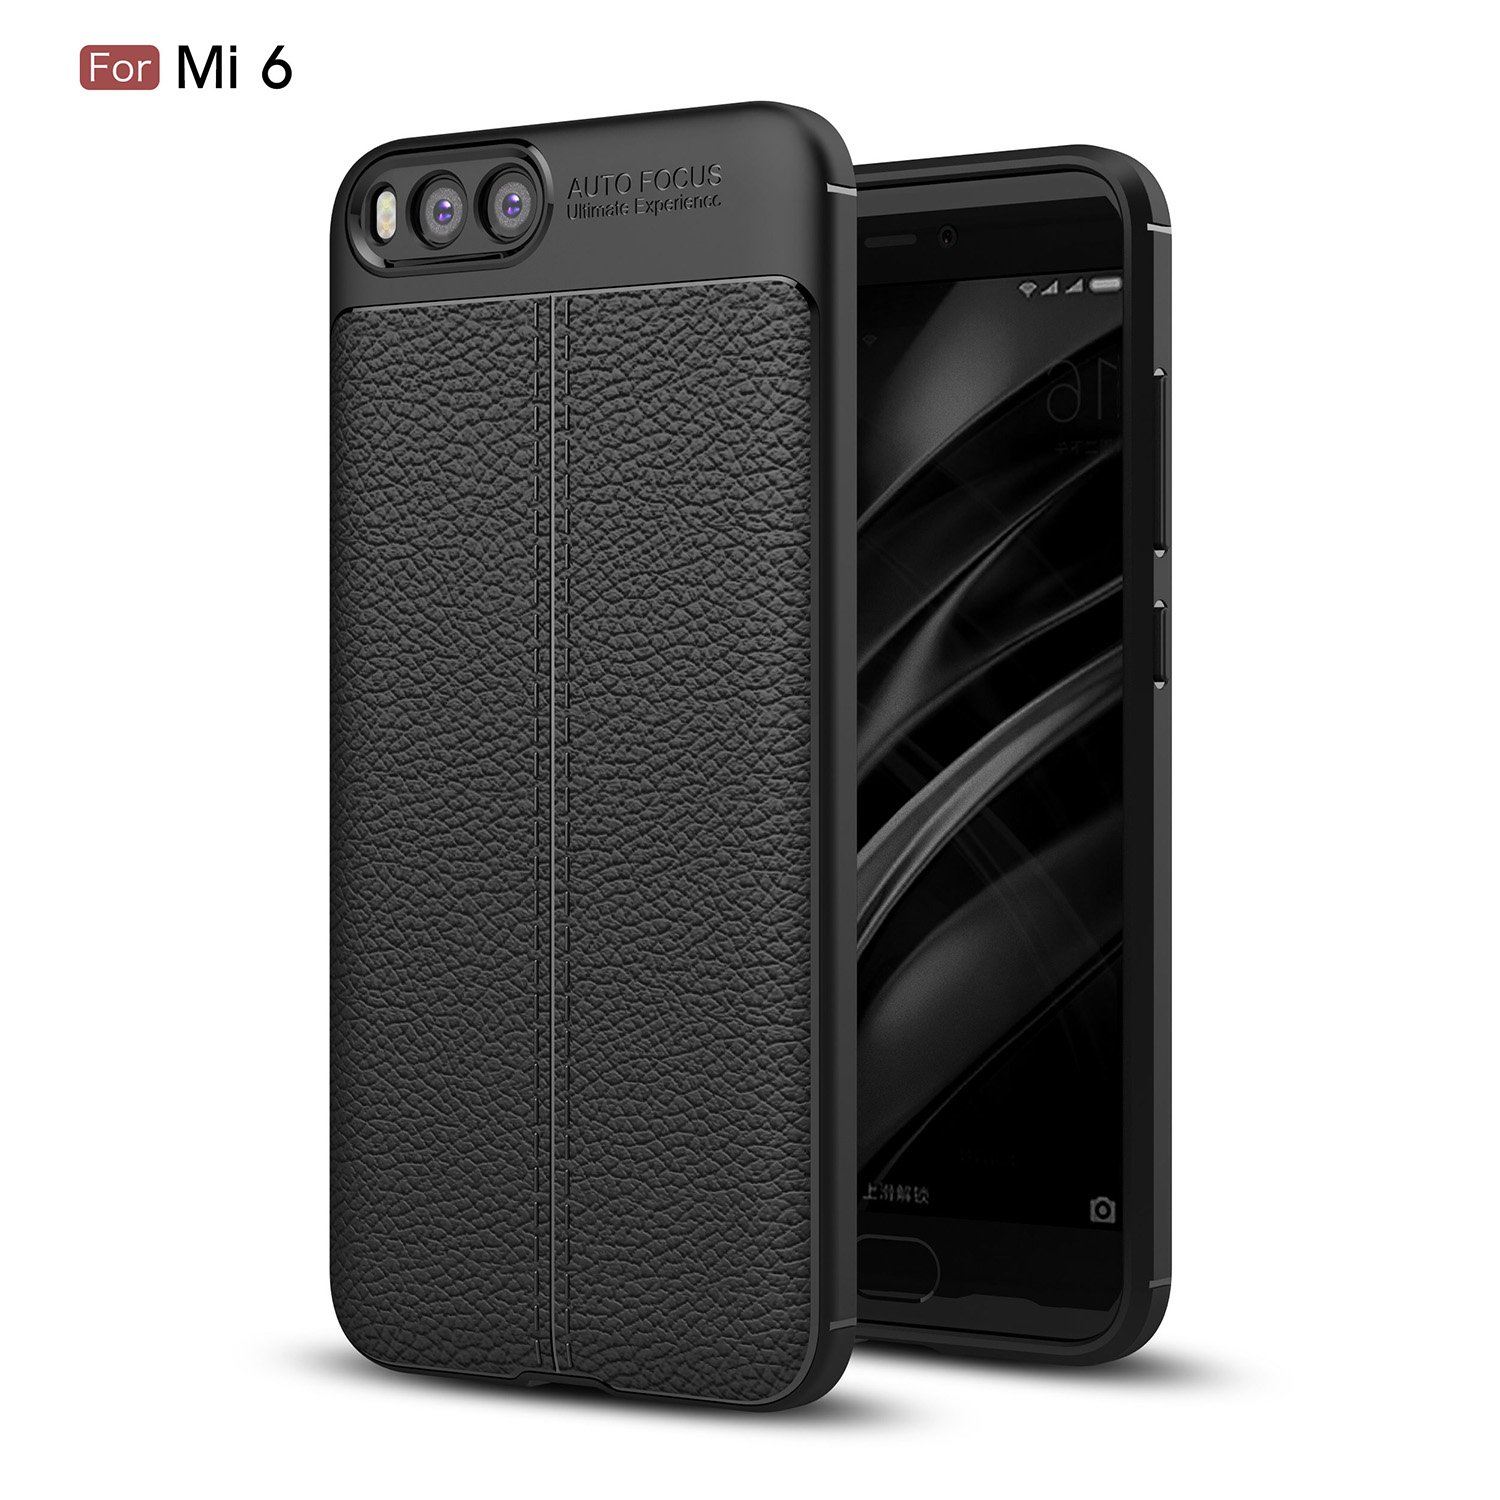 Xiaomi Mi 6 Case Daibo Silicone Gel Rubber Perfect Slim Ringke Fusion For Smoke Black Fit Soft Mobile Phone 515 Inch Cell Phones